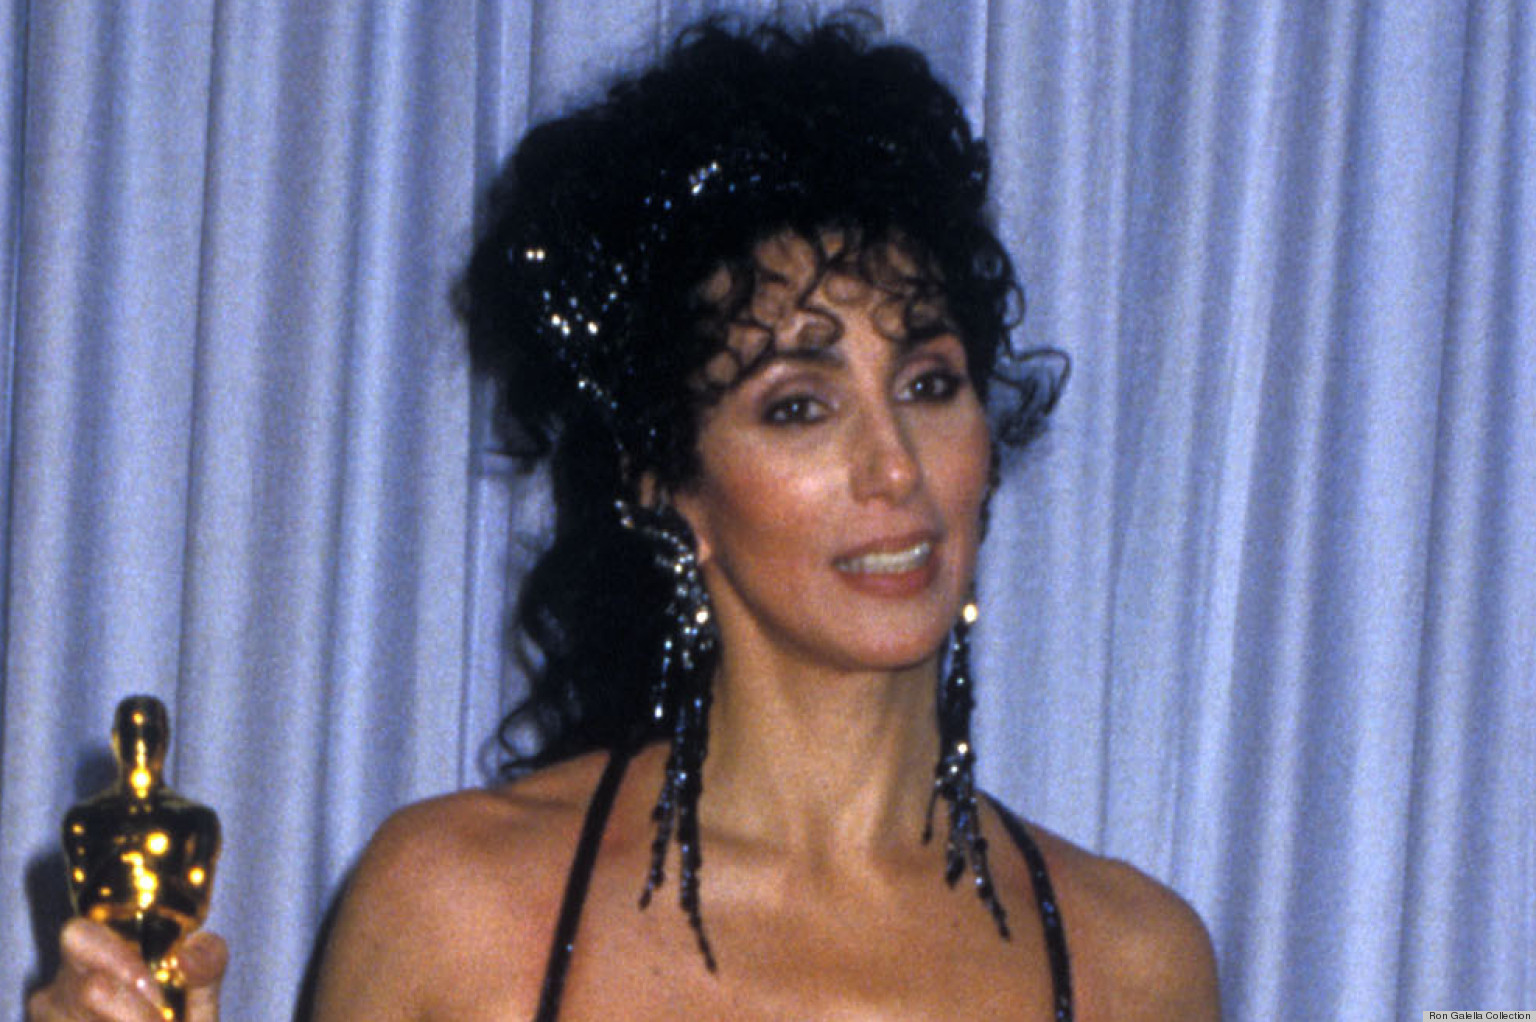 PHOTO: Cher's 1988 Oscar Dress Was A Landmark Sheer Fashion Moment